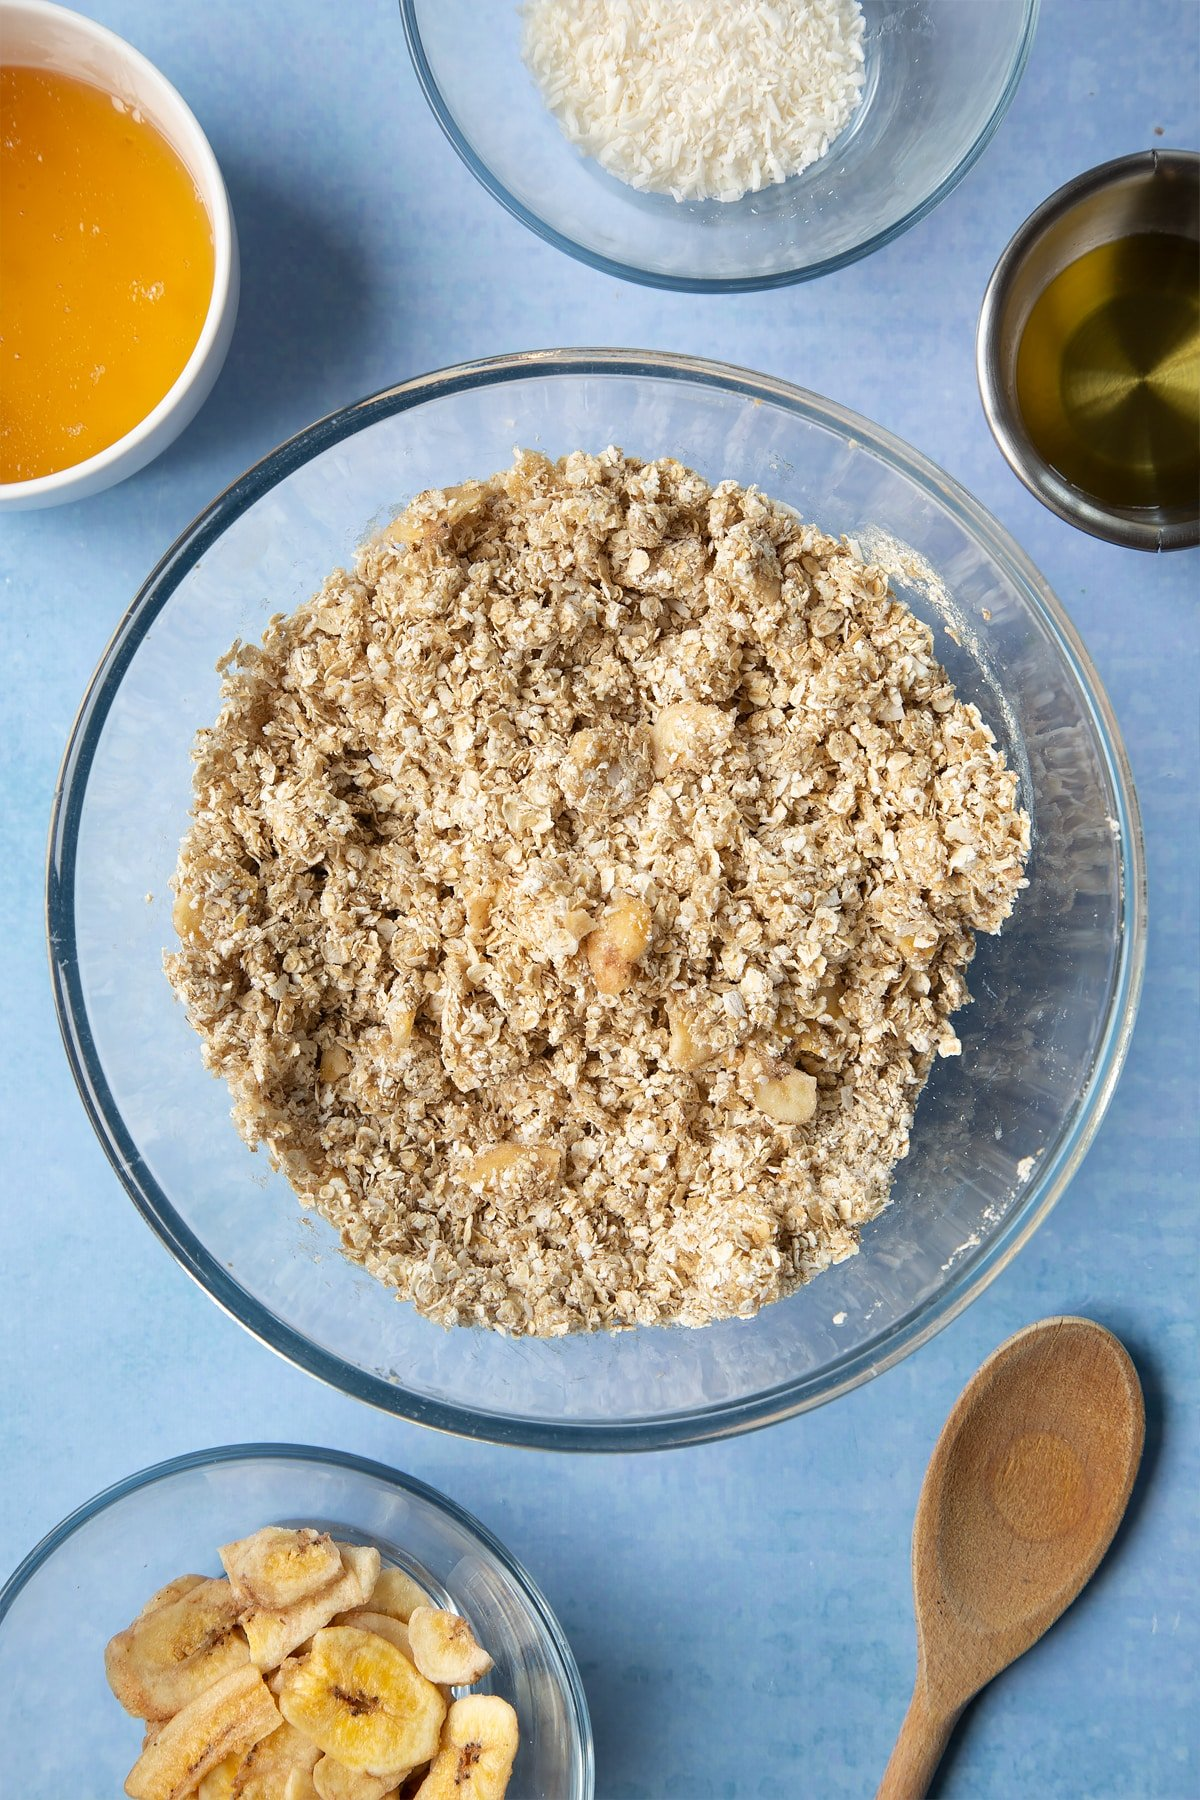 A large glass mixing bowl containing rolled oats, dried banana chips, desiccated coconut, oil and honey mixed together. Ingredients to make a banana coconut granola recipe surround the bowl.